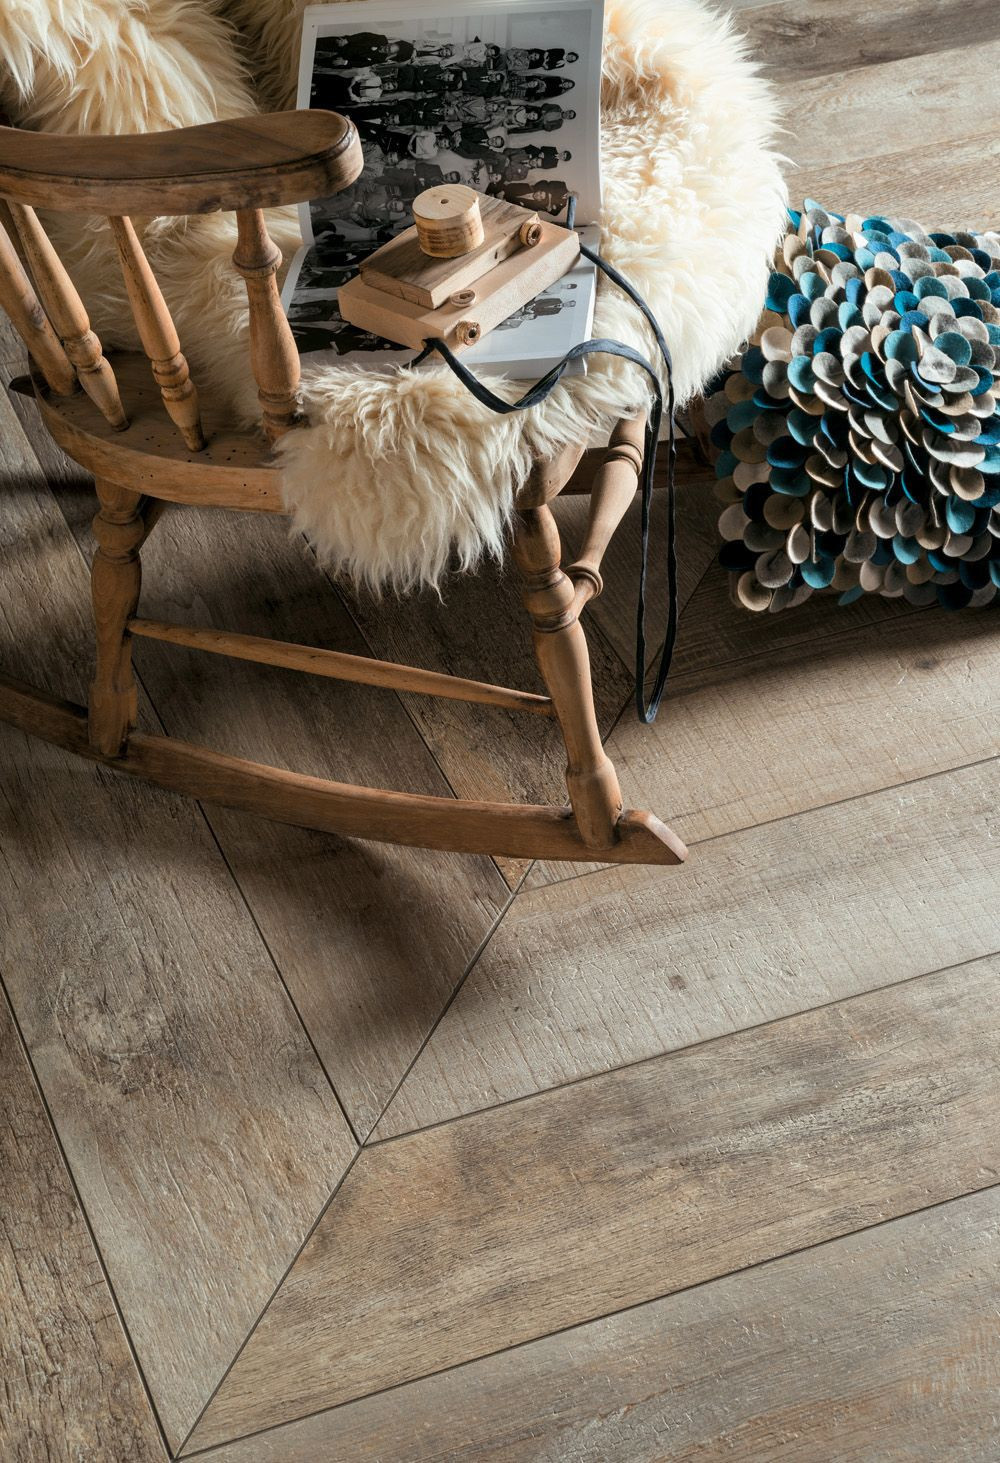 18 Fashionable Hardwood Floor Cost Per Square Meter 2021 free download hardwood floor cost per square meter of ceramic wood tile installation cost fresh minoli tiles twelvenoon regarding ceramic wood tile installation cost fresh minoli tiles twelvenoon twelveno